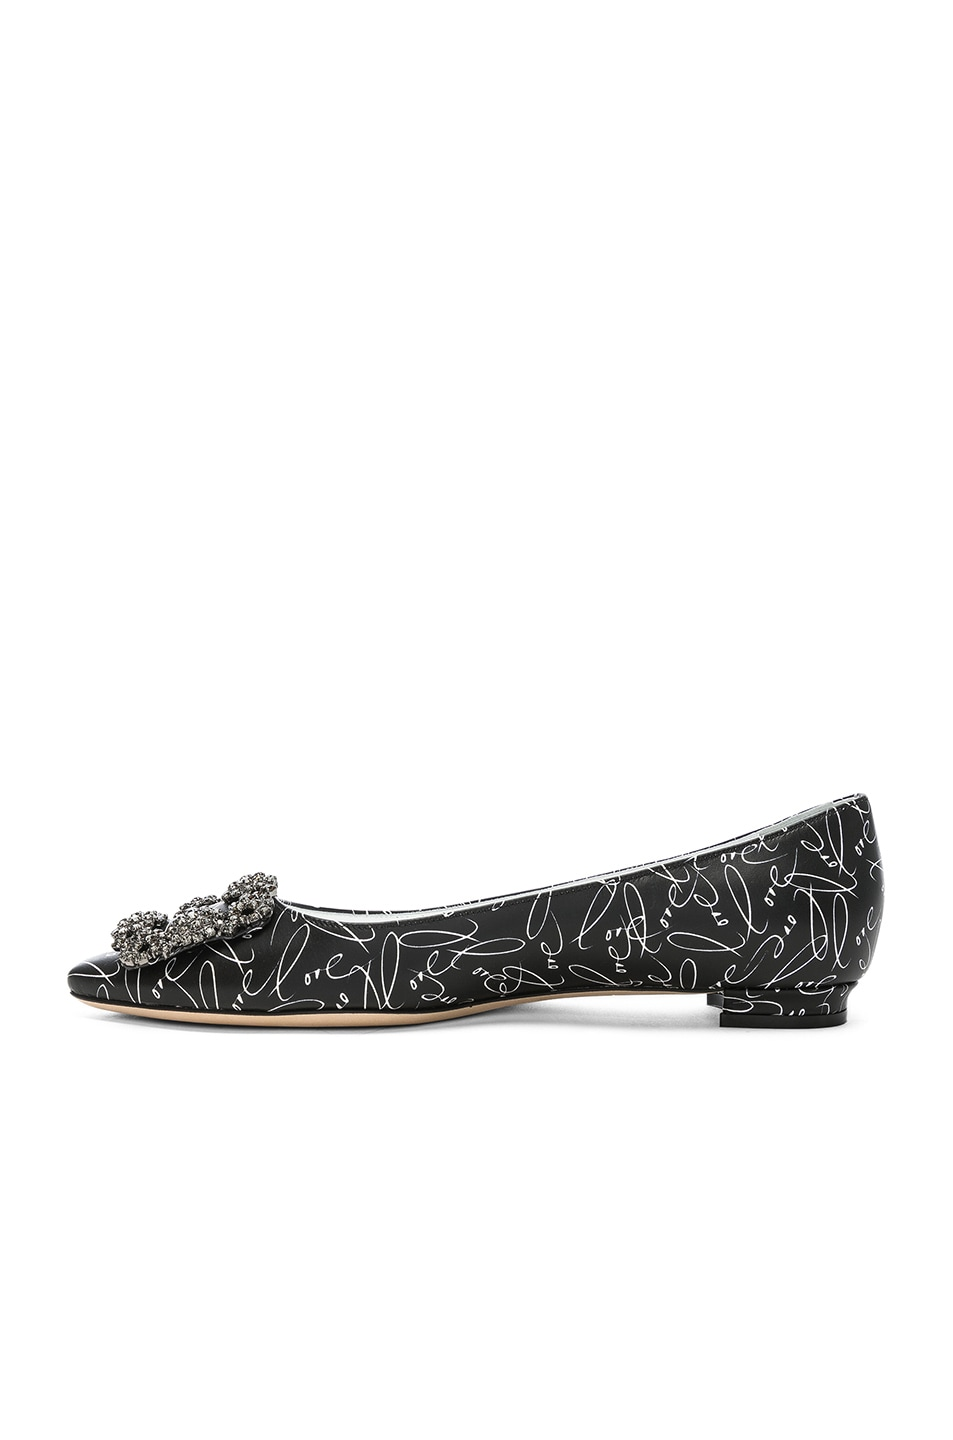 Image 5 of Manolo Blahnik A Decade of Love Hangisi Flat in Black